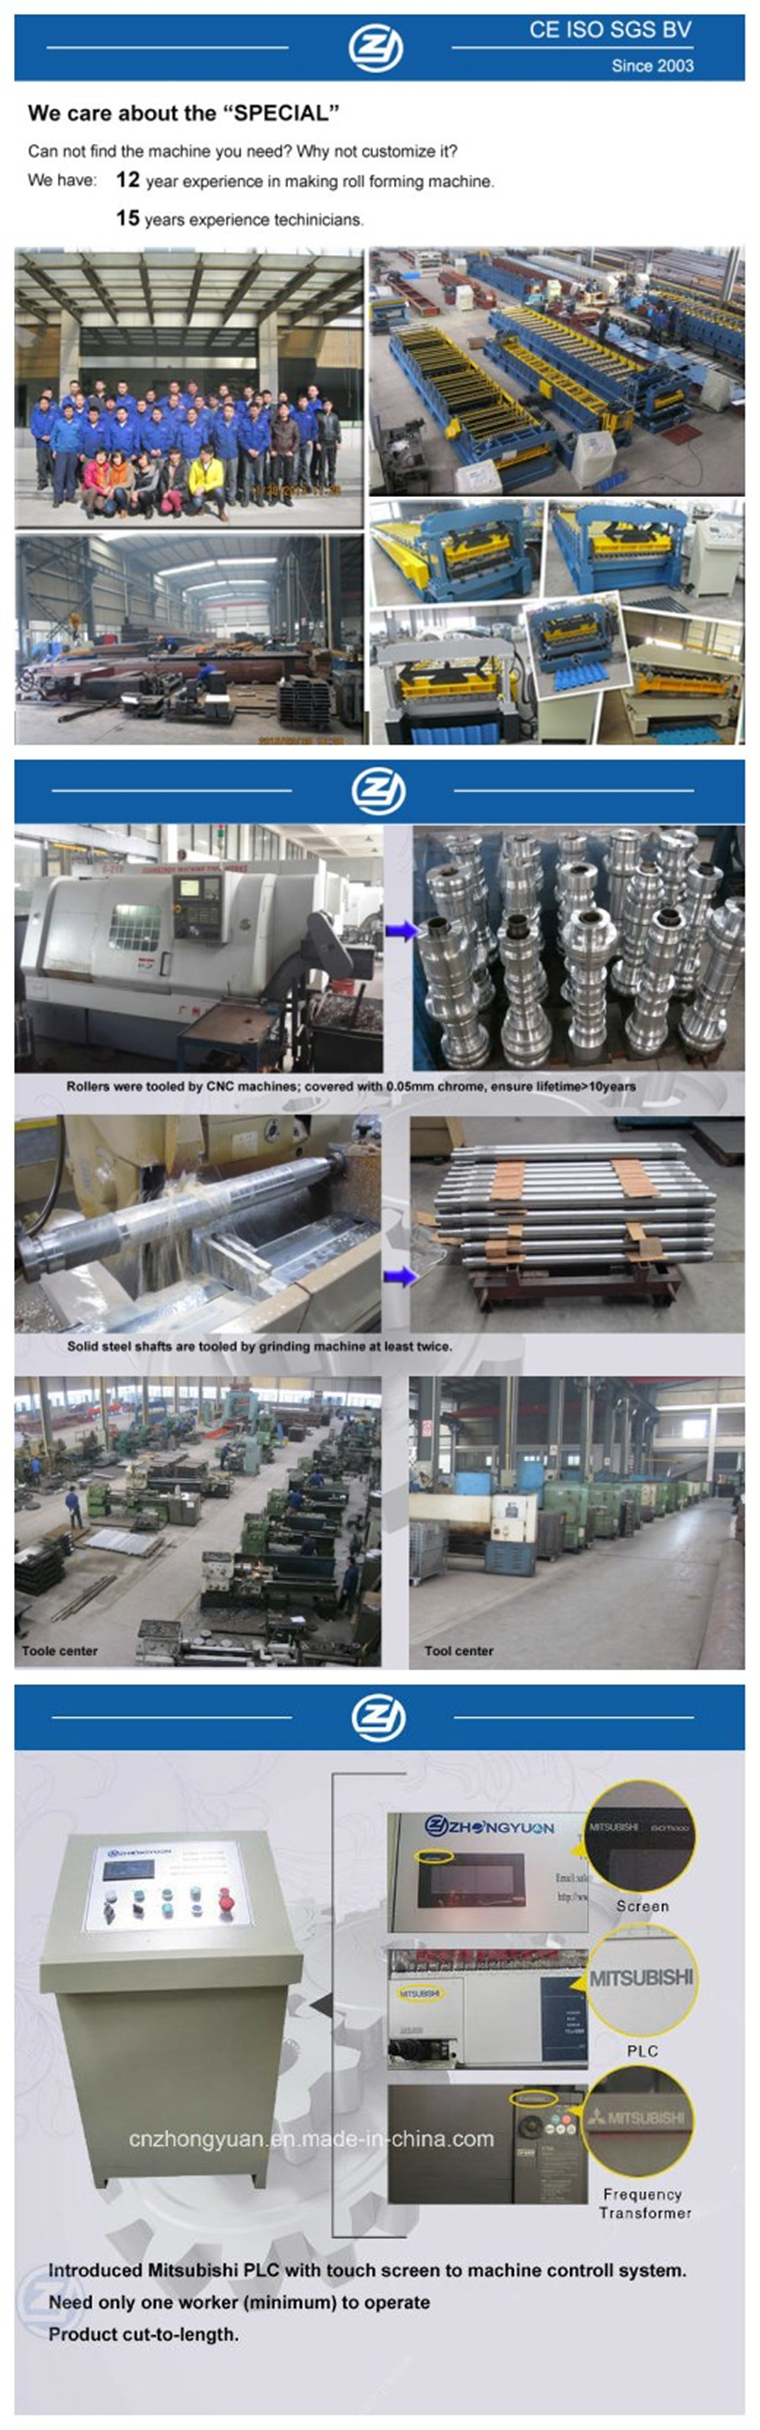 Roll Former Production Line Manufacturers Making Best Quality Automatic Metal Terrazzo Roof Glazed Tile Forming Machine for Sale Factory Price